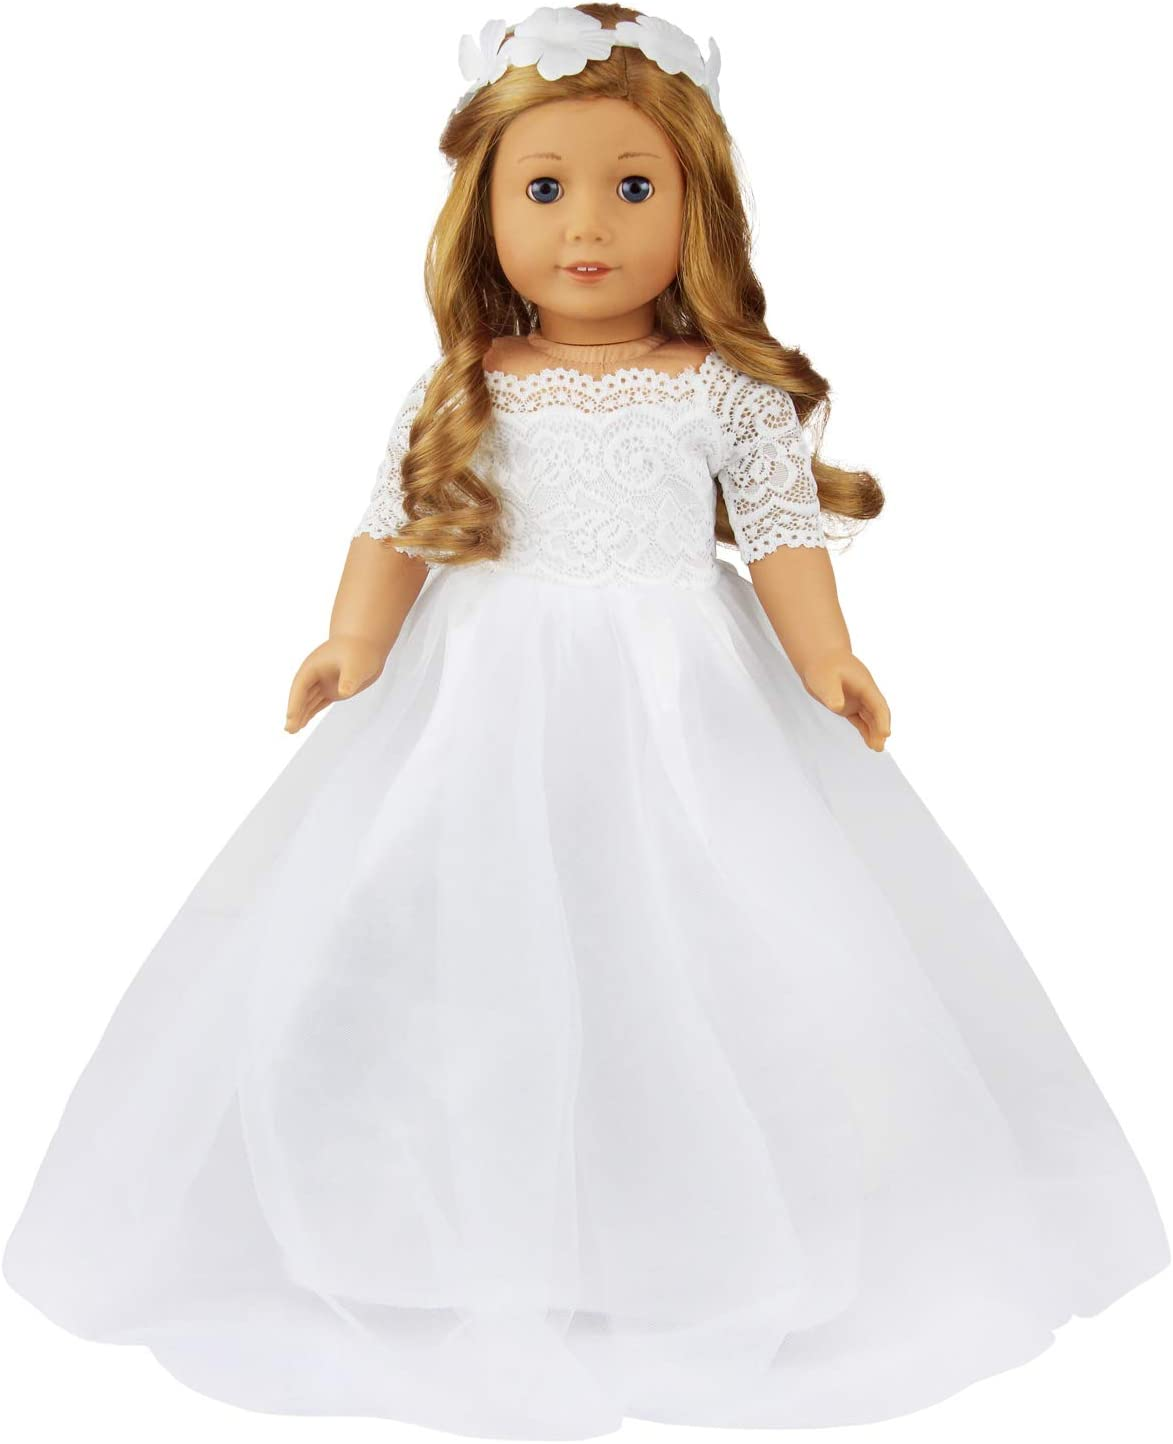 Doll Wedding Dress Fashion Pink Party Outfit For American Girl 18 Inch Toy Gift